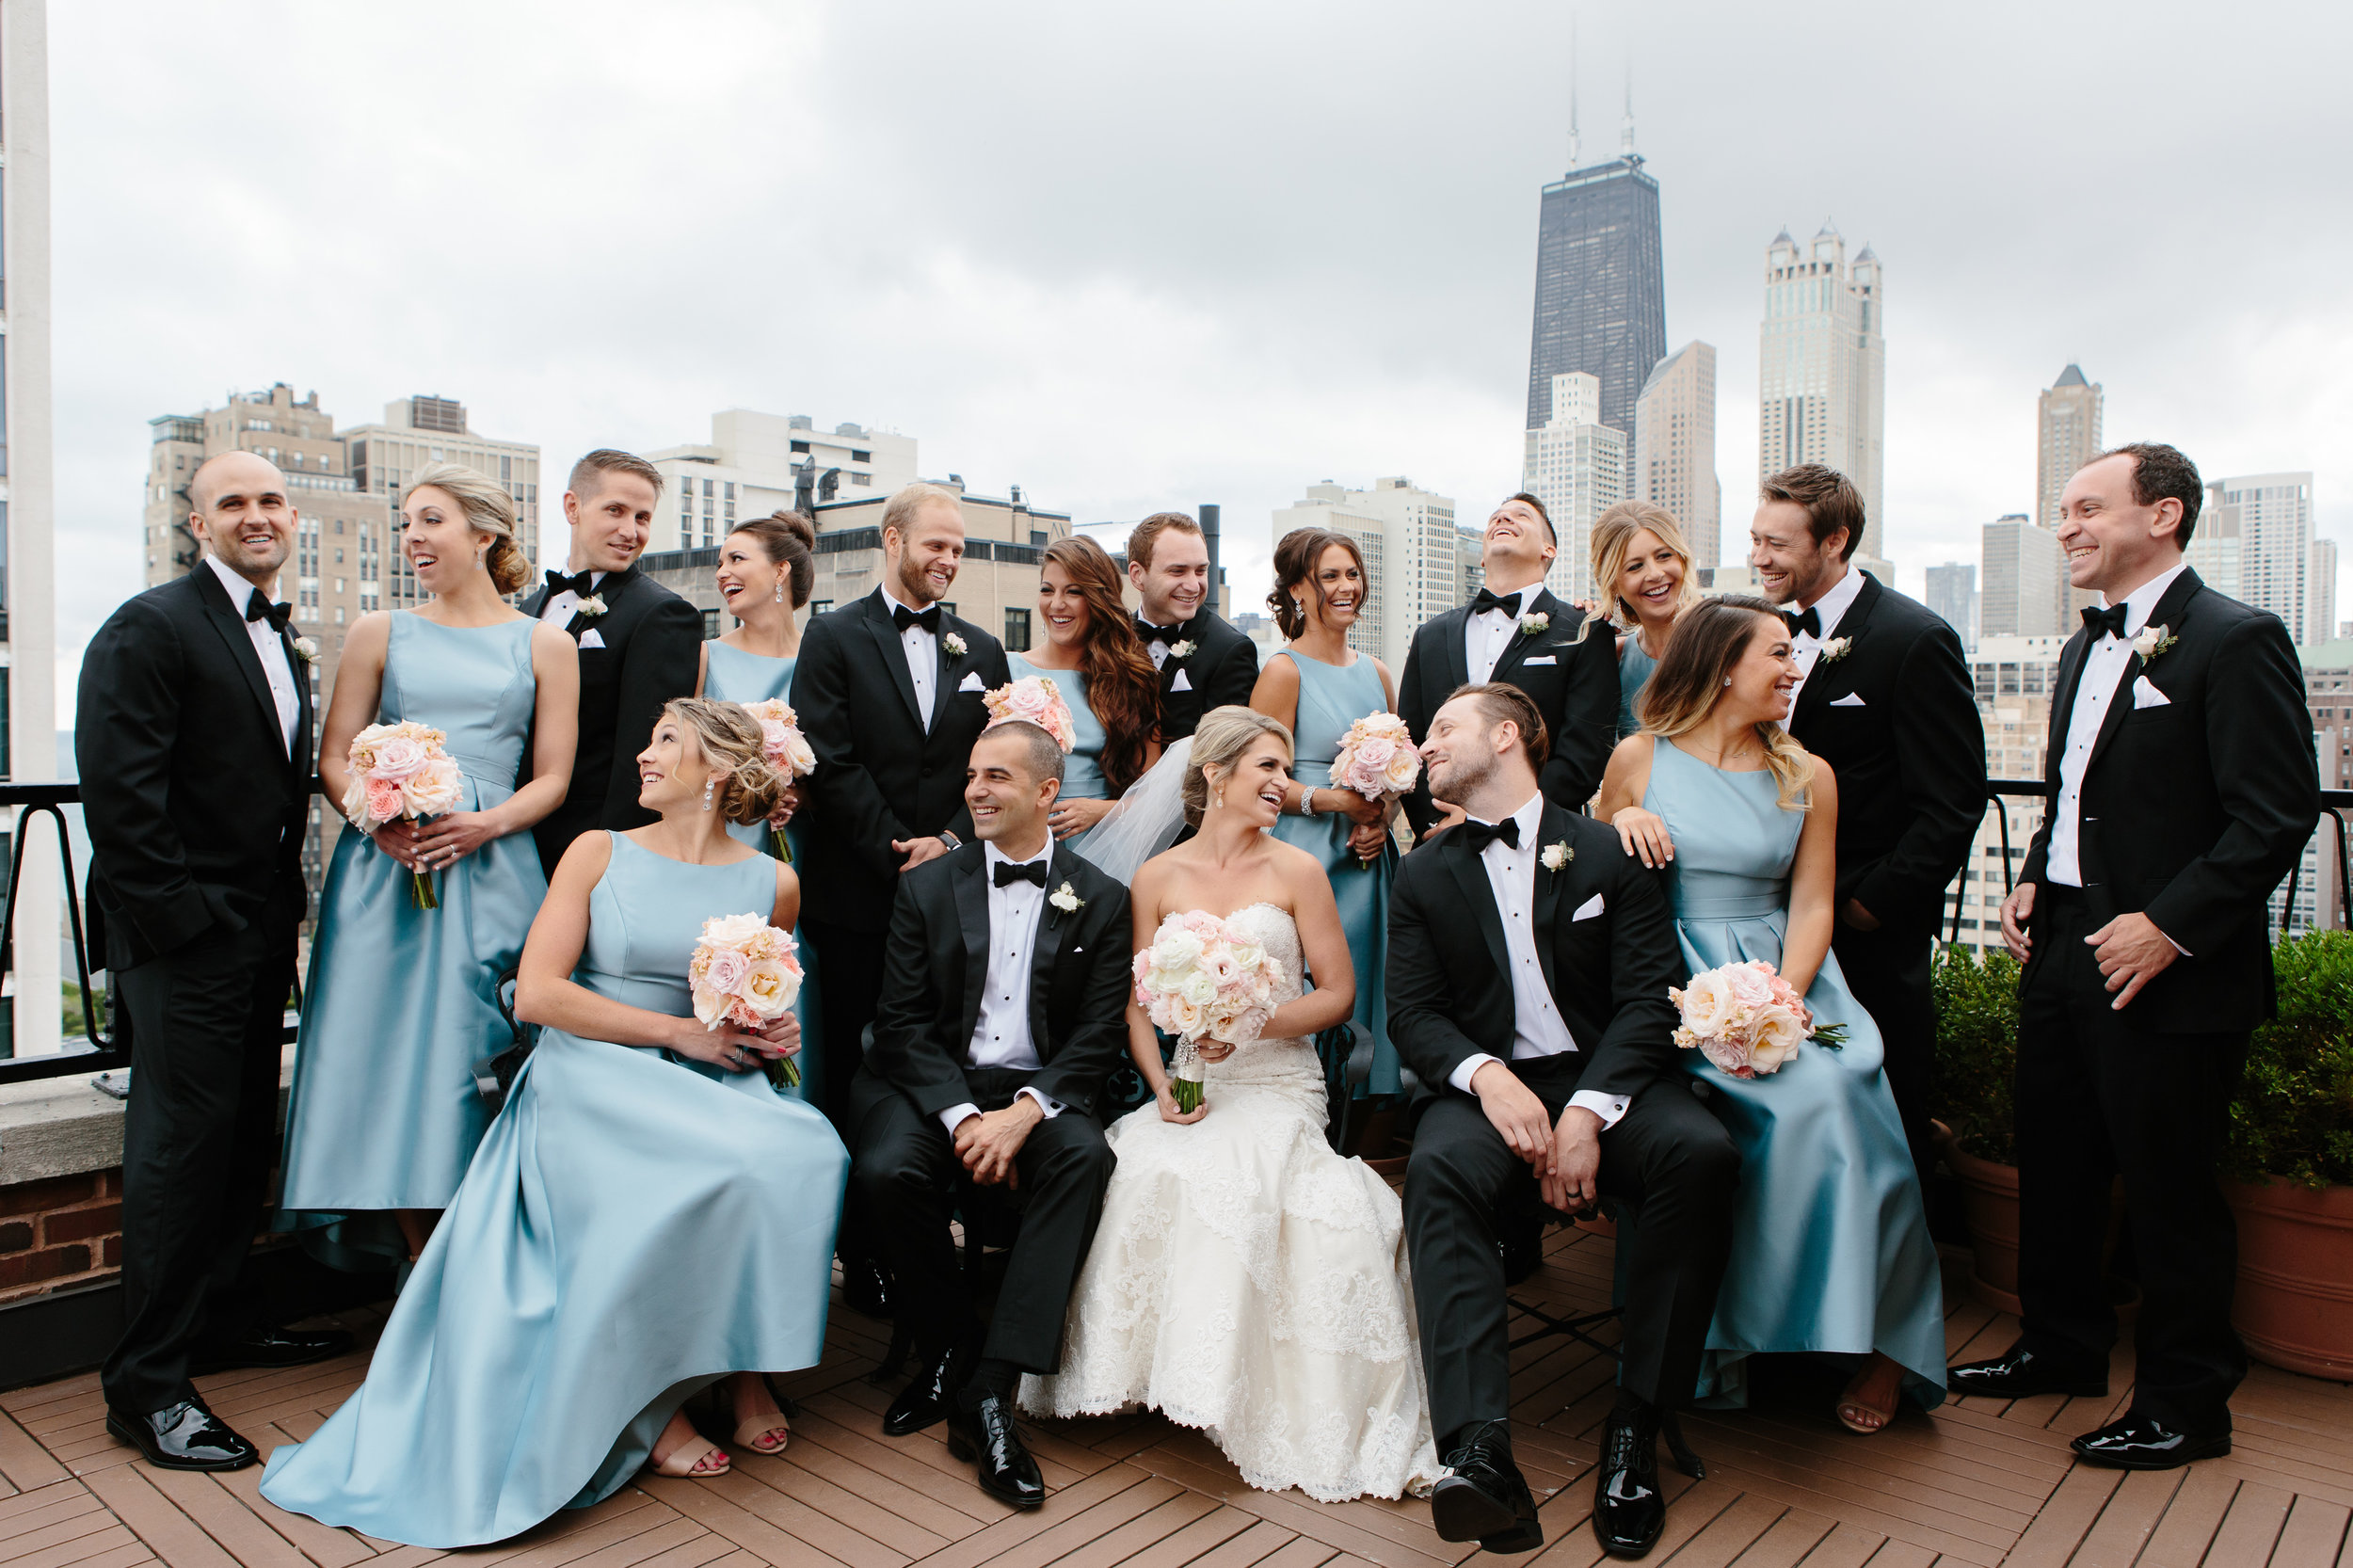 Nicodem Creative_Wilson Wedding_Germania Place Chicago Blog-12.jpg